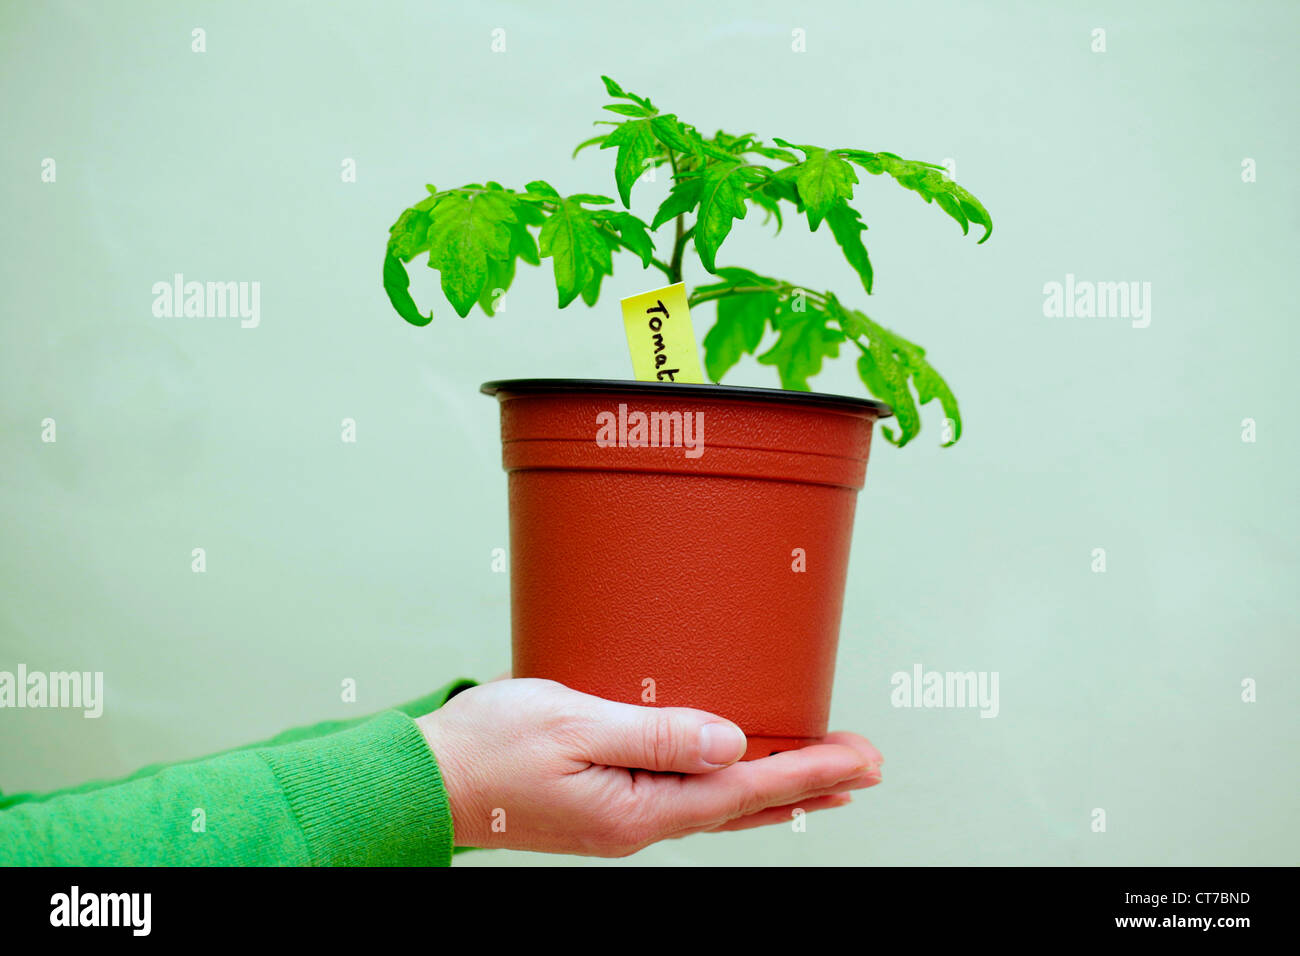 Person holding a tomato plant - Stock Image